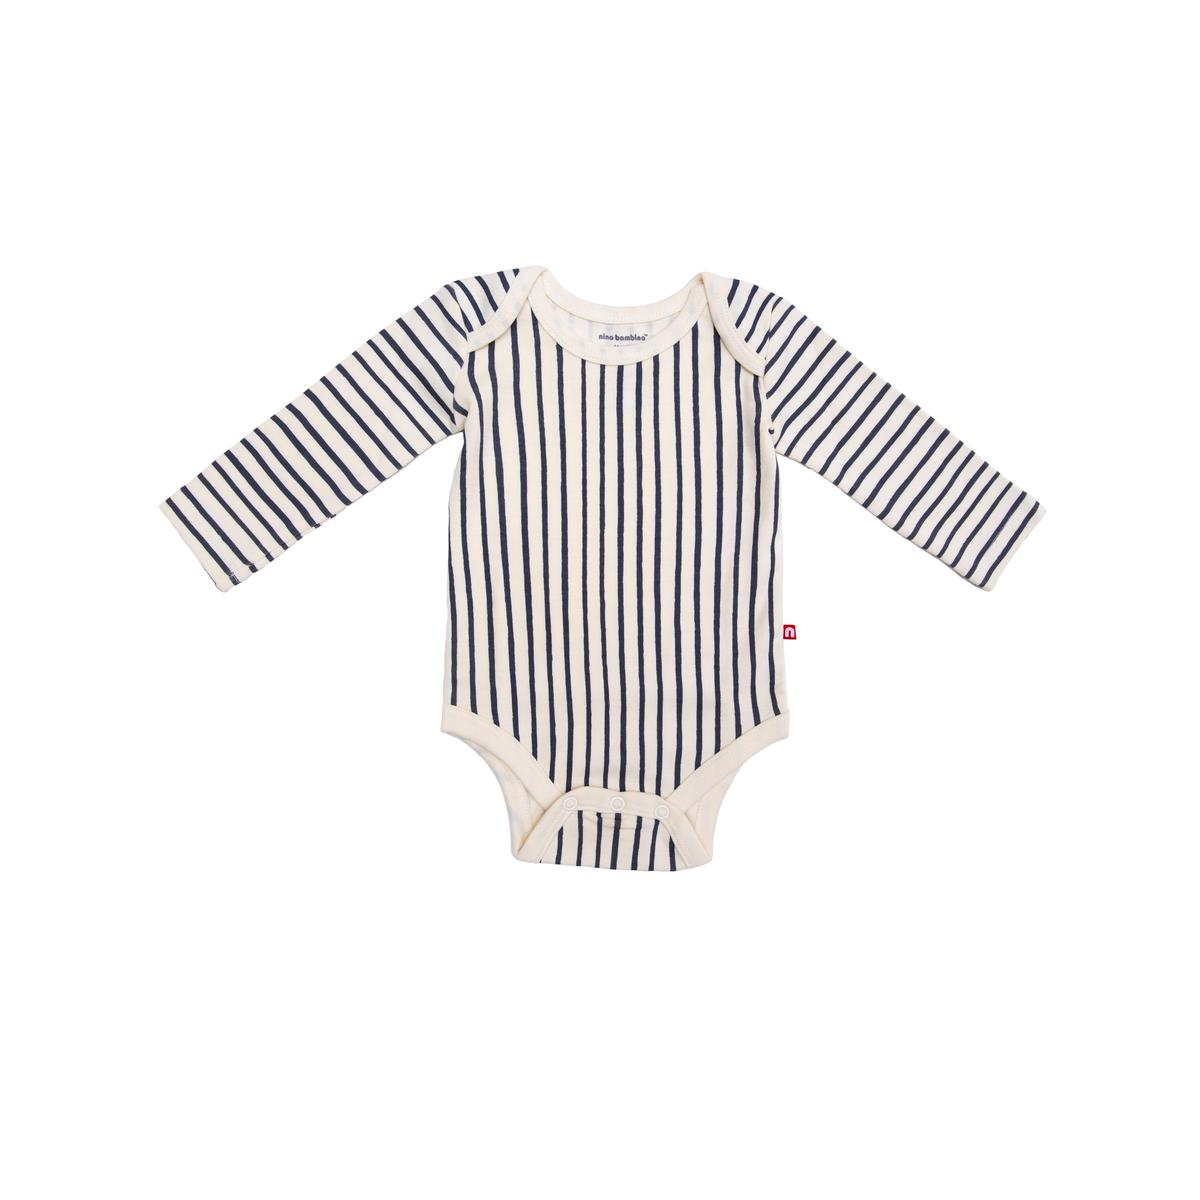 Nino Bambino - 100% Organic Cotton Round Neck Full Sleeve Vertical Striped Black & Cream Color Bodysuit For Baby Boy And Baby Girl